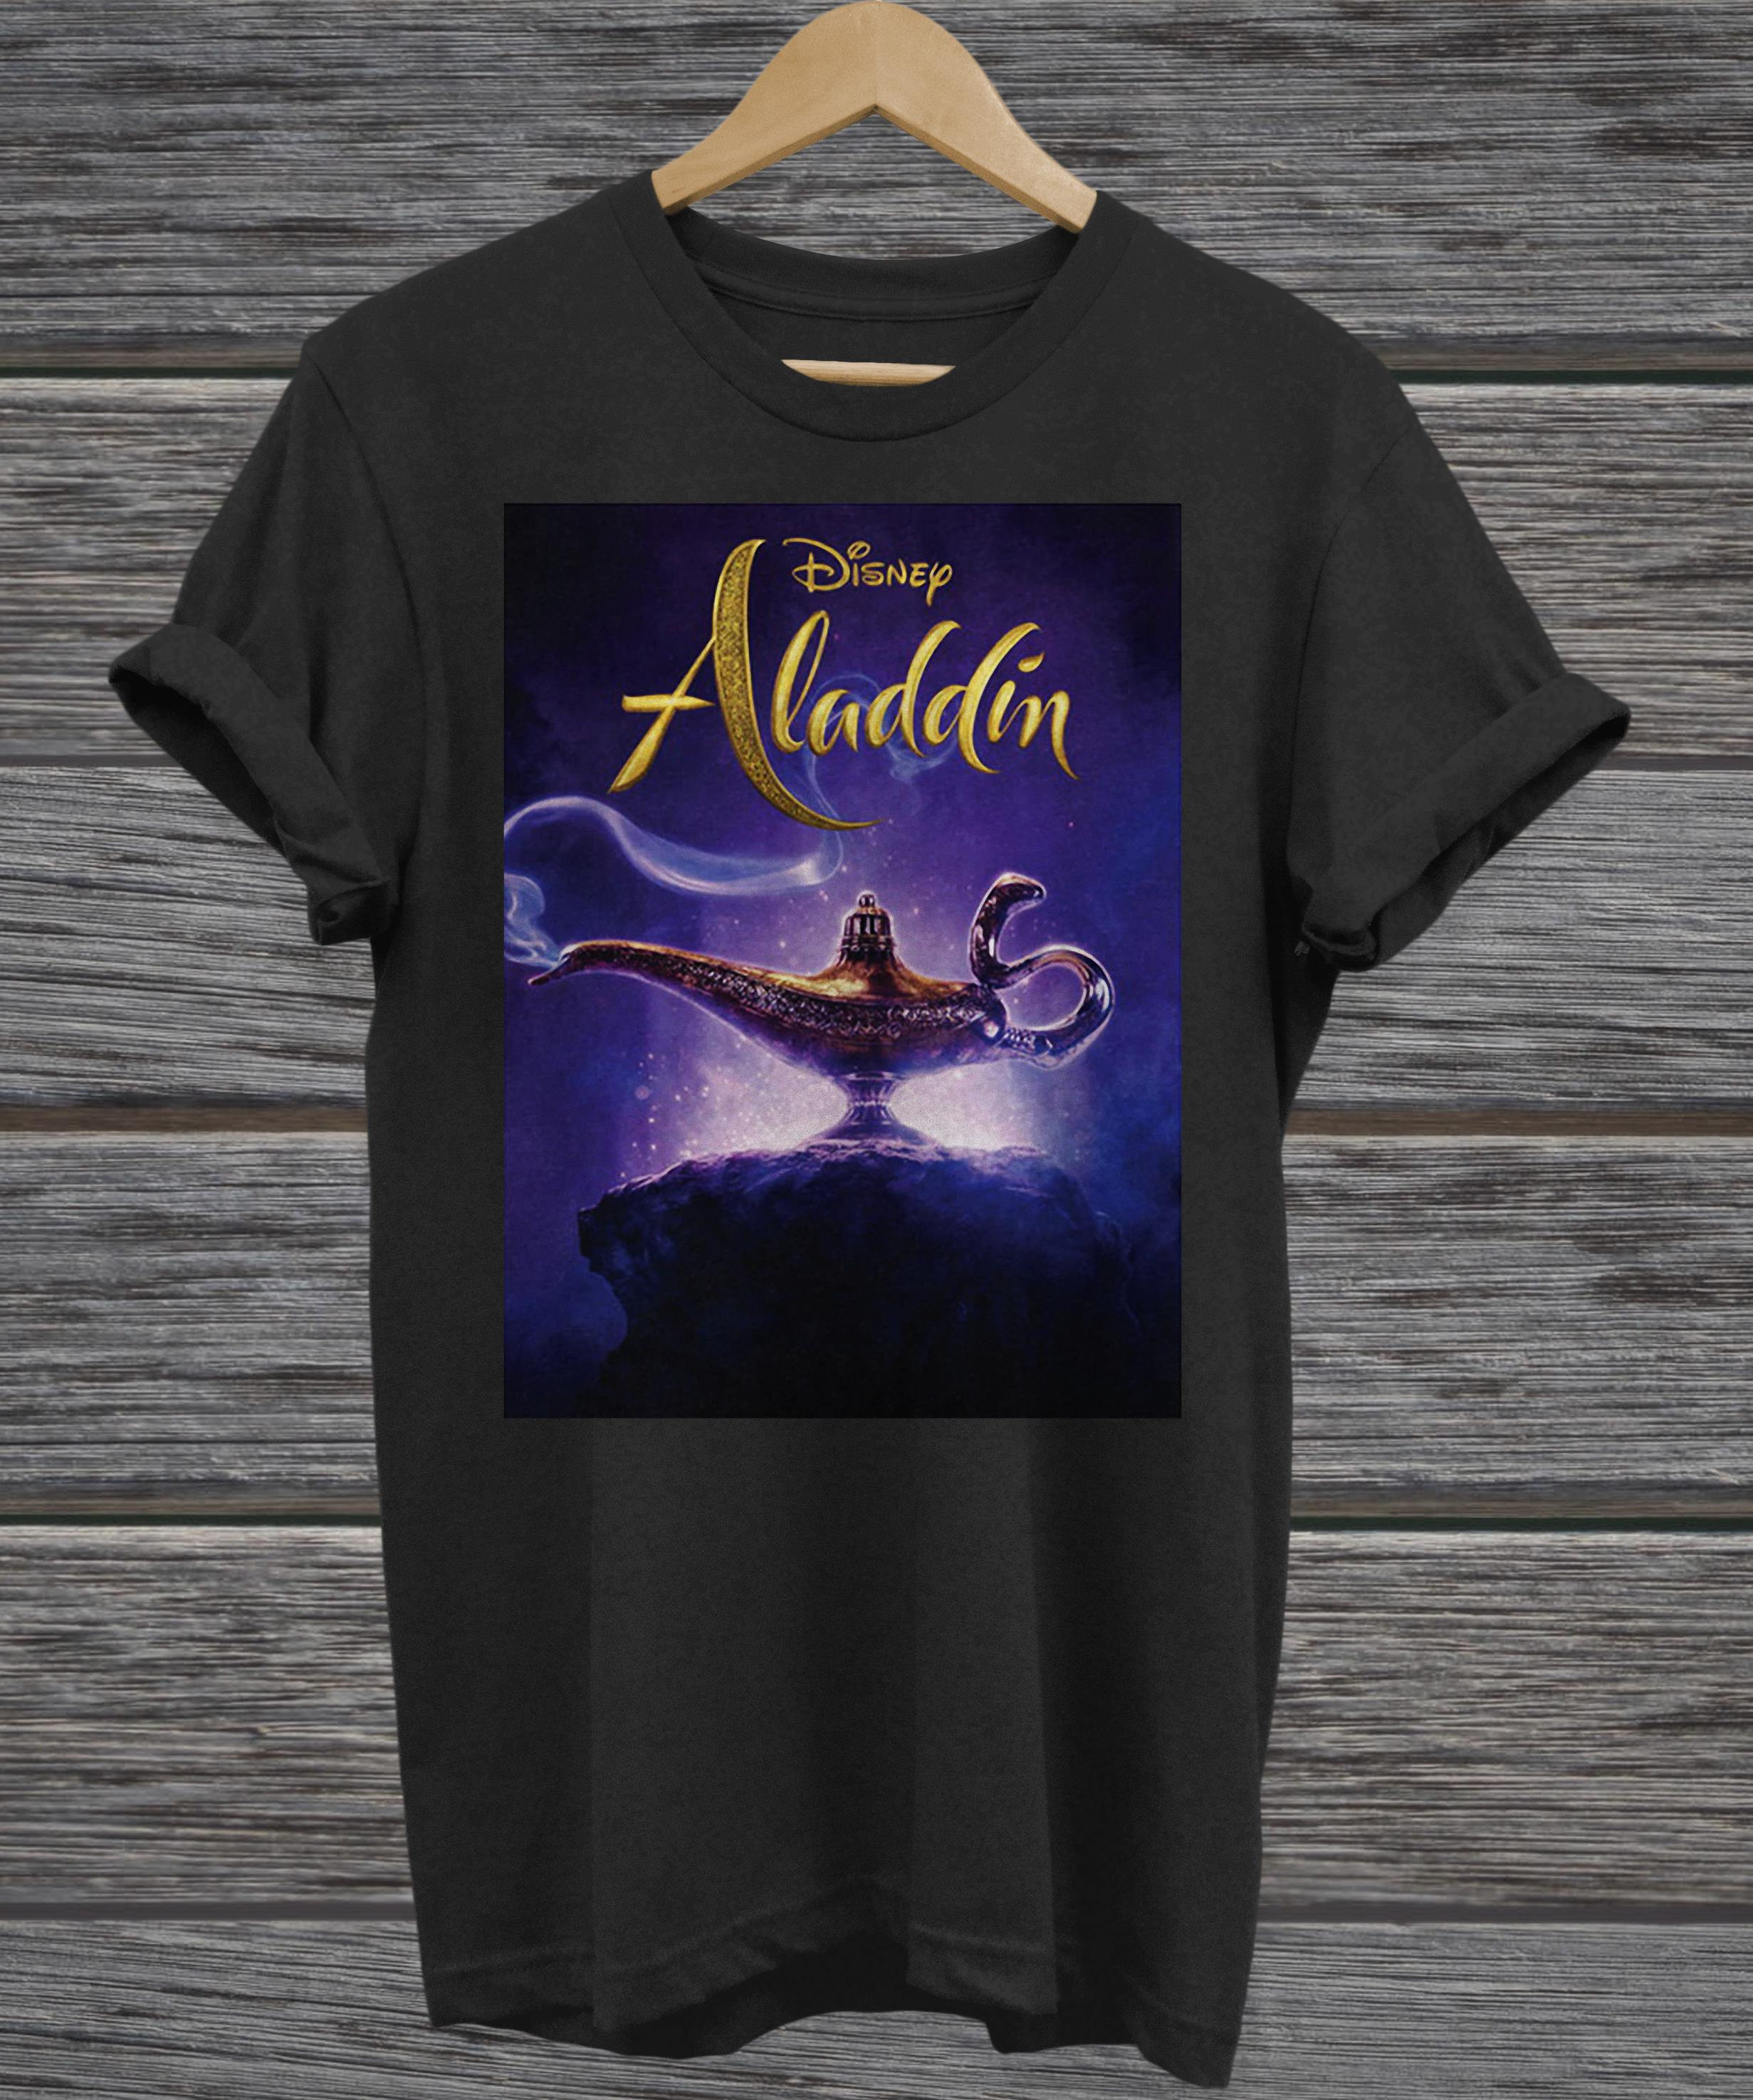 Disney Aladdin and the magic lamp v-neck